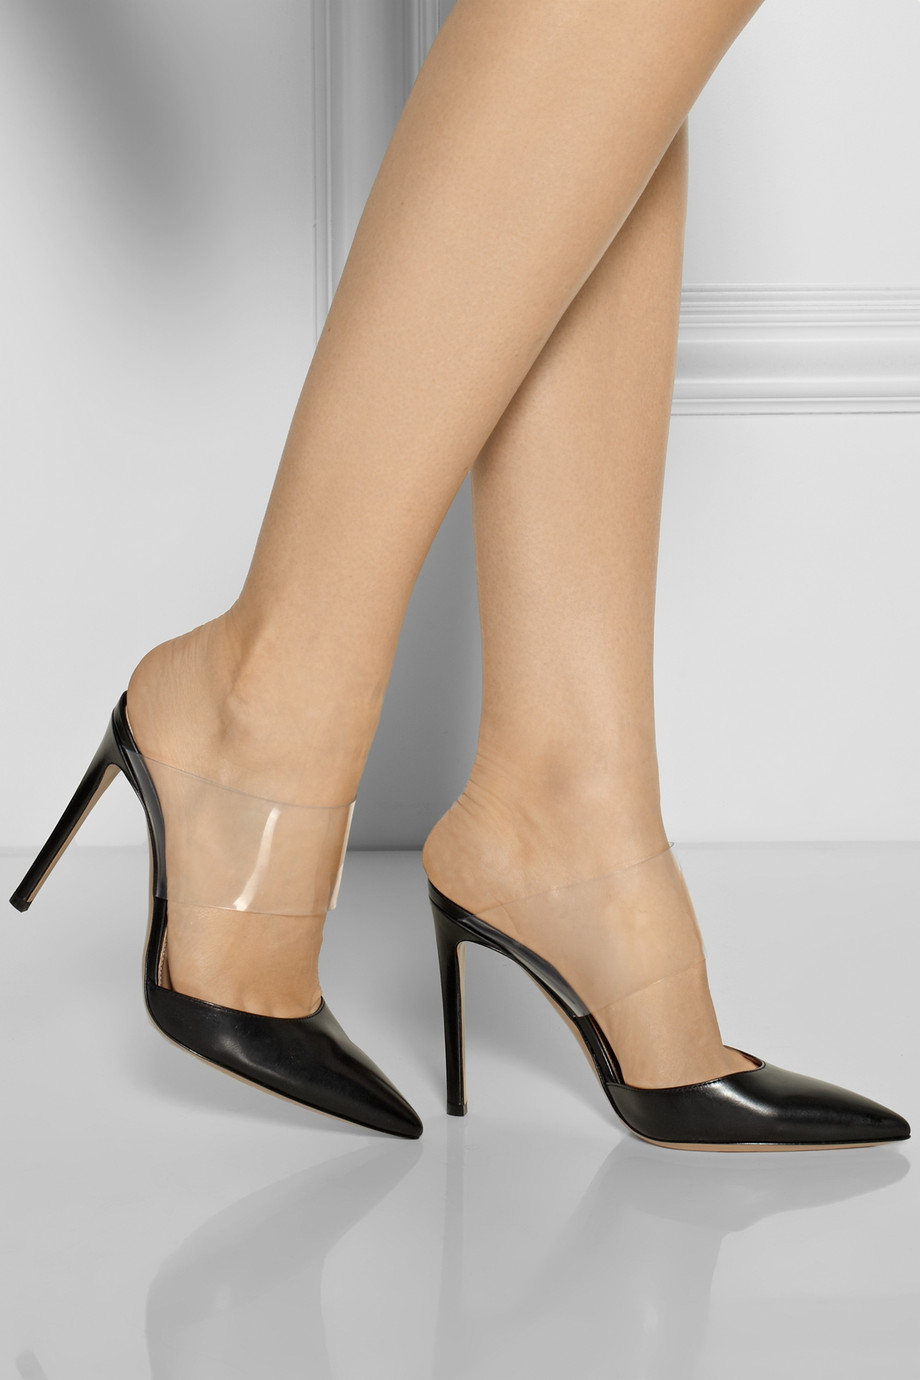 gianvito-rossi-black-leather-and-pvc-pumps-product-1-23412526-0-141713205-normal.jpg